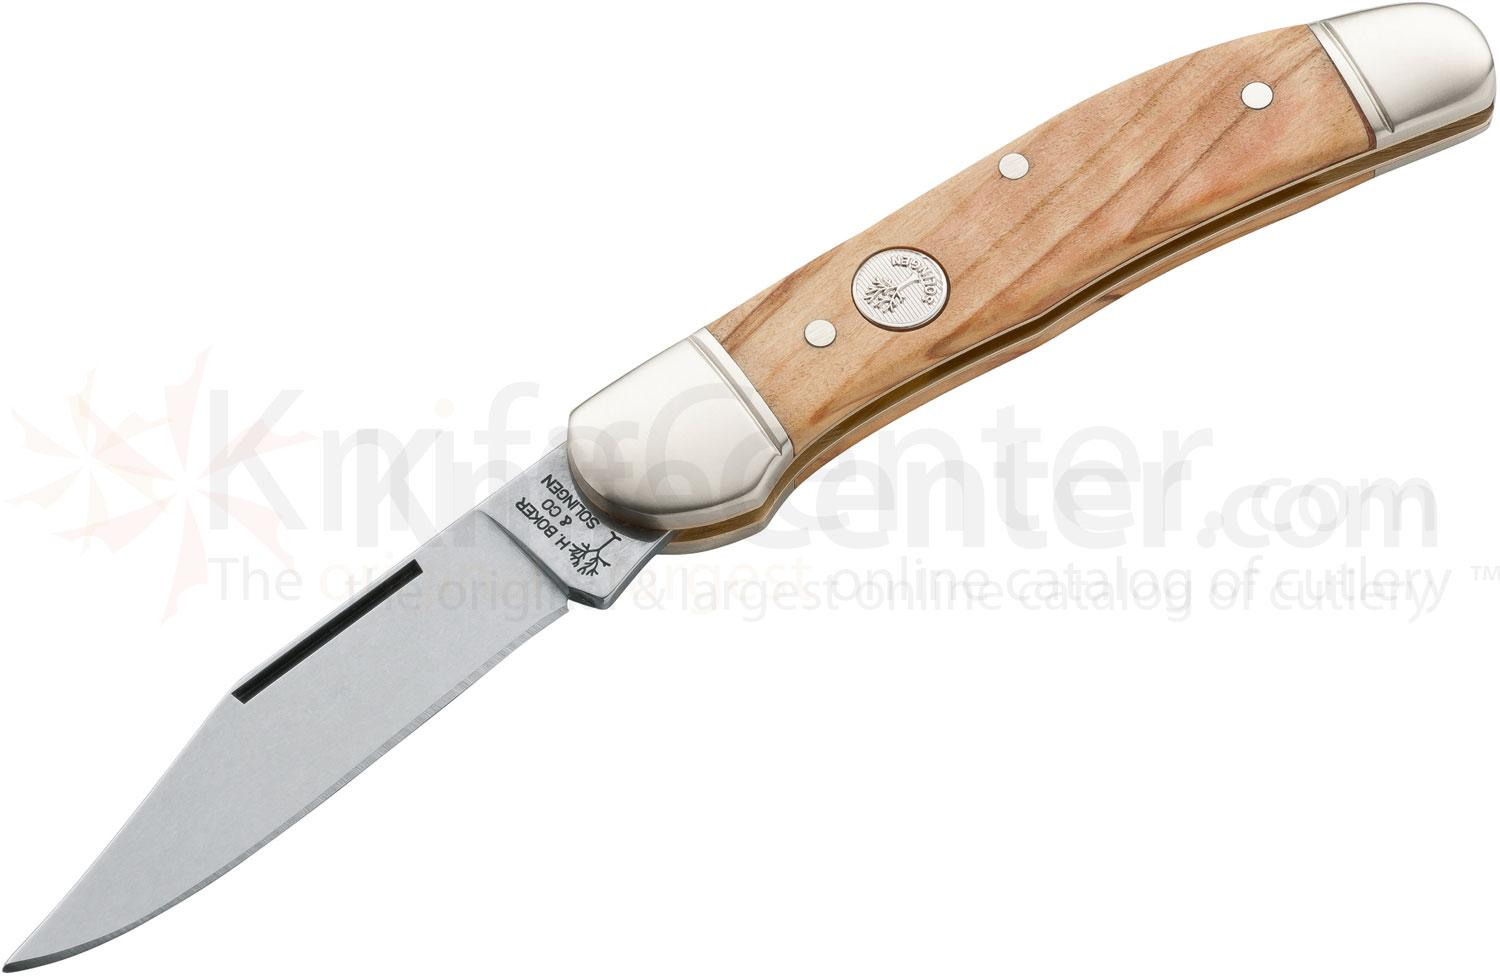 Boker Evergreen Series Special Edition Copperhead with Olive Wood Handle 3-3/4 inch Closed